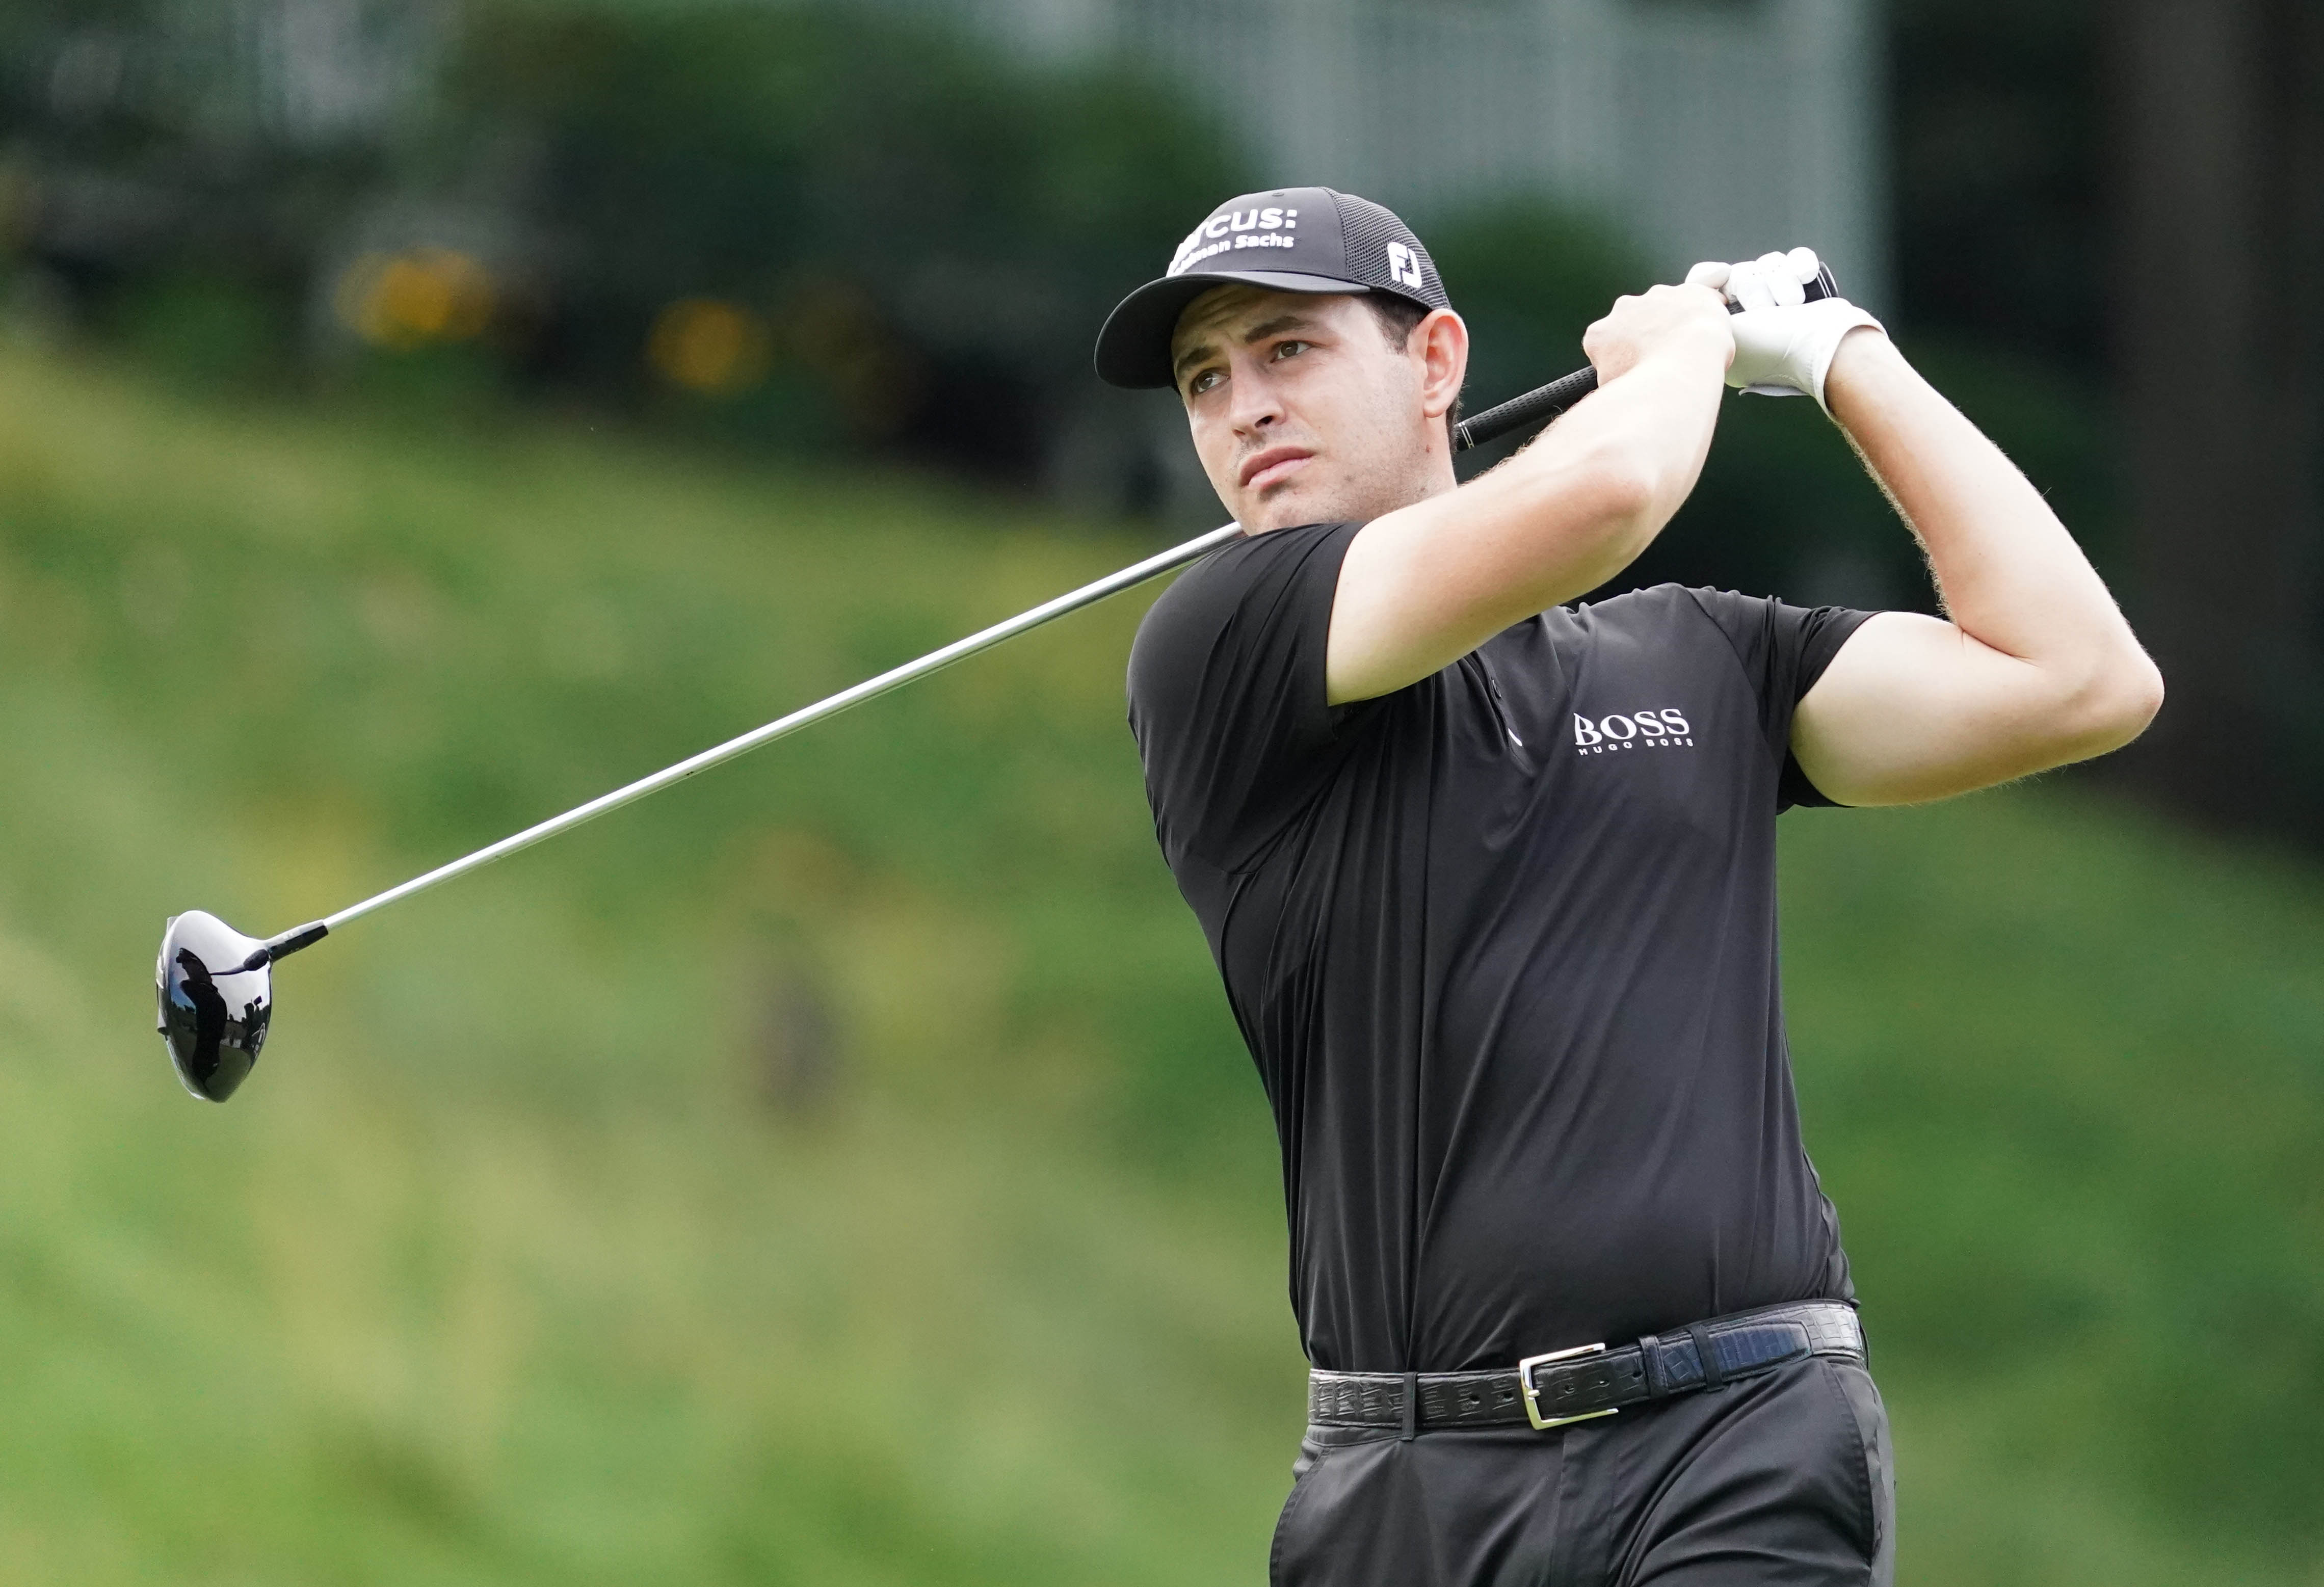 Patrick Cantlay hits his tee shot on the 18th hole during the first round of the Travelers Championship golf tournament at TPC River Highlands.